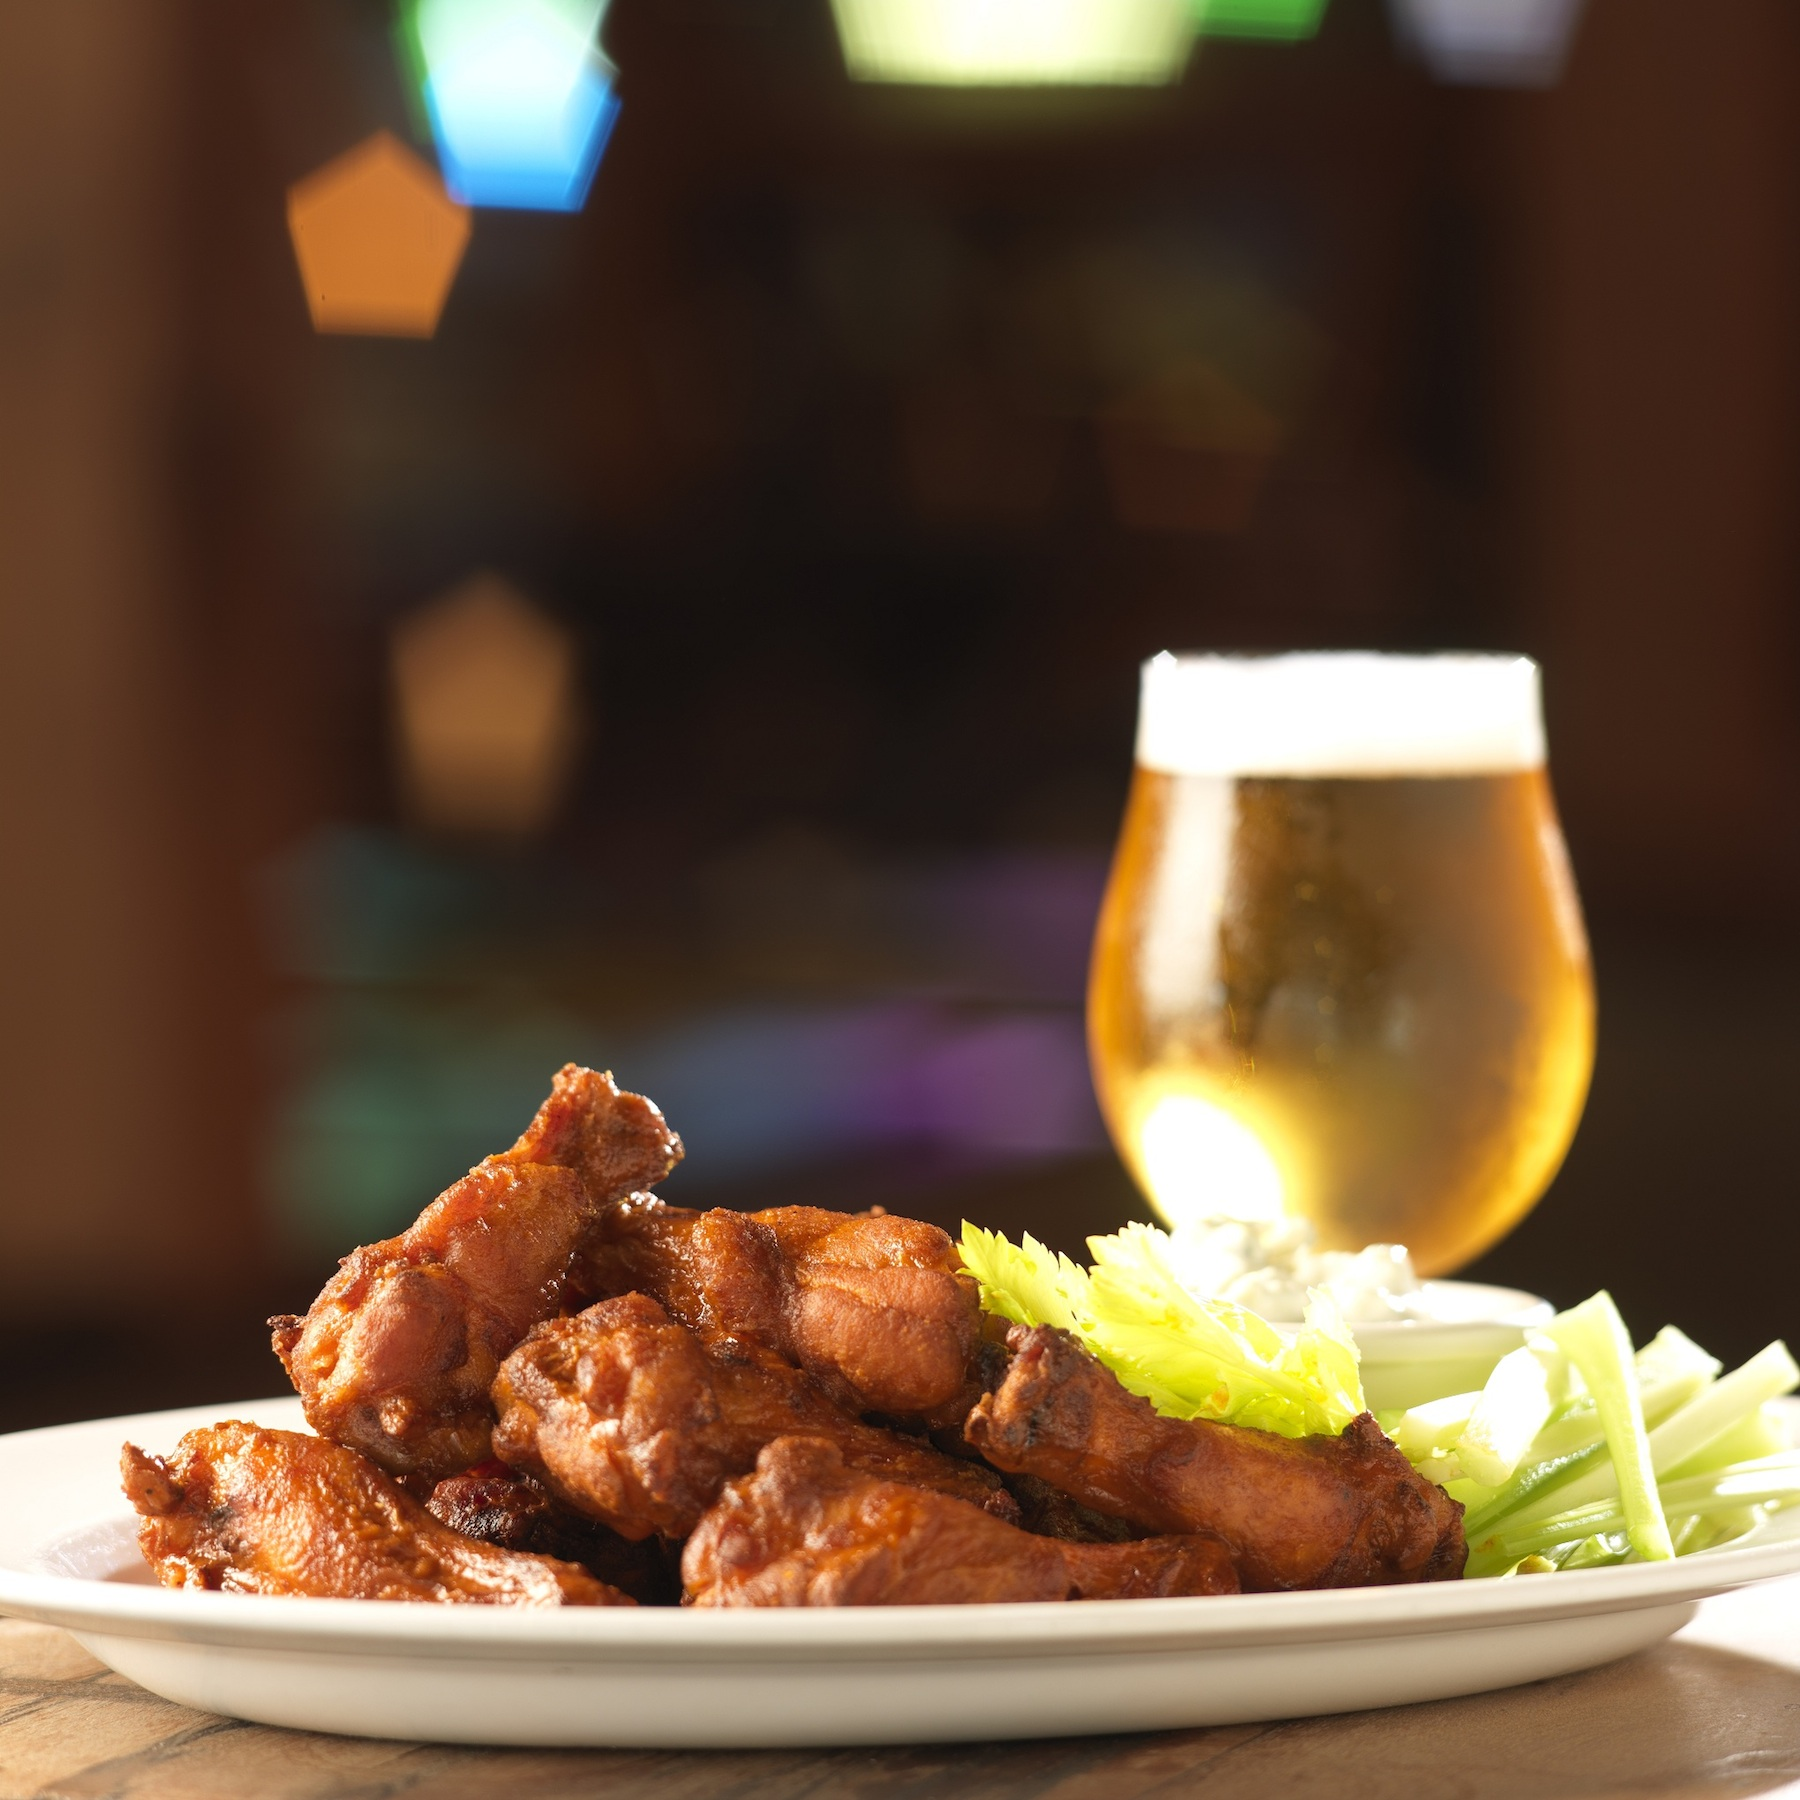 Recipes With Chicken Fingers: Chicken Wings: The Ultimate Beer & Food Match